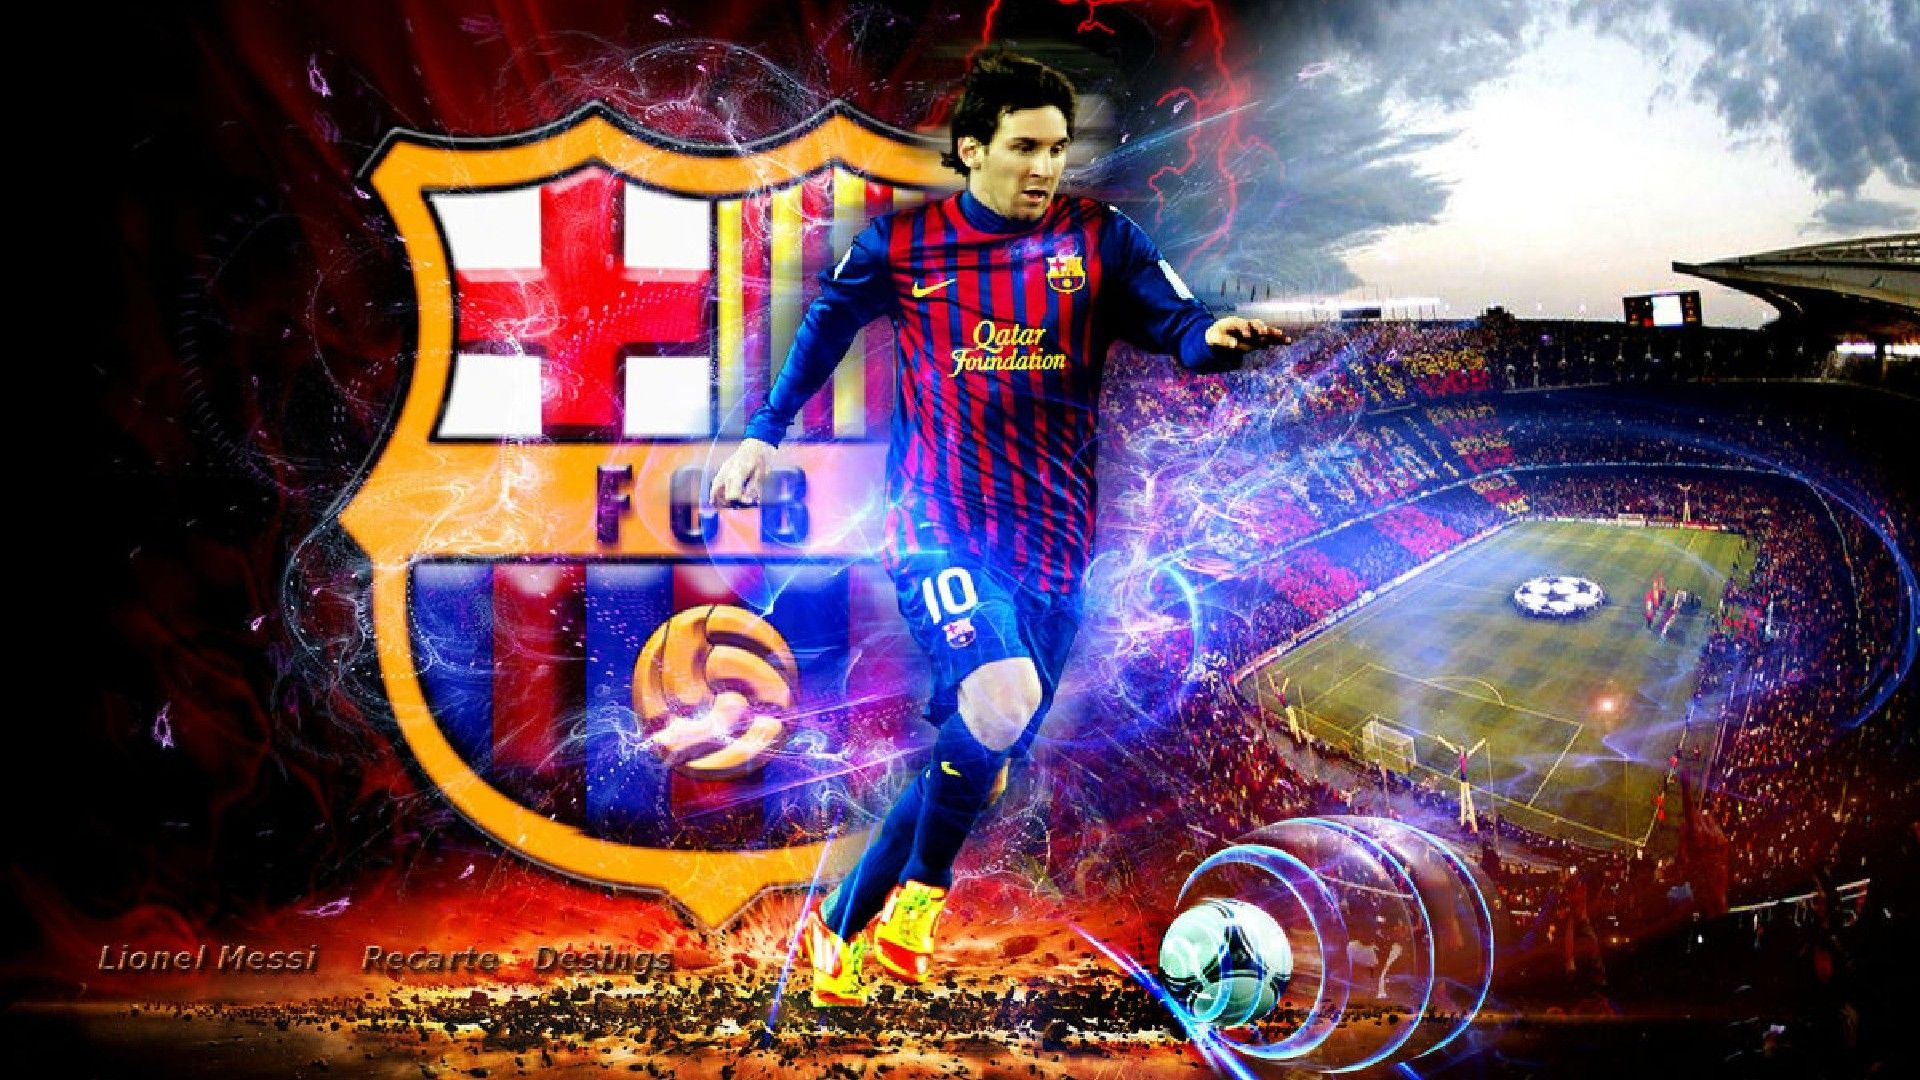 футбол 1 Wallpaper: Lionel Messi Wallpapers High Quality Download Free 1280